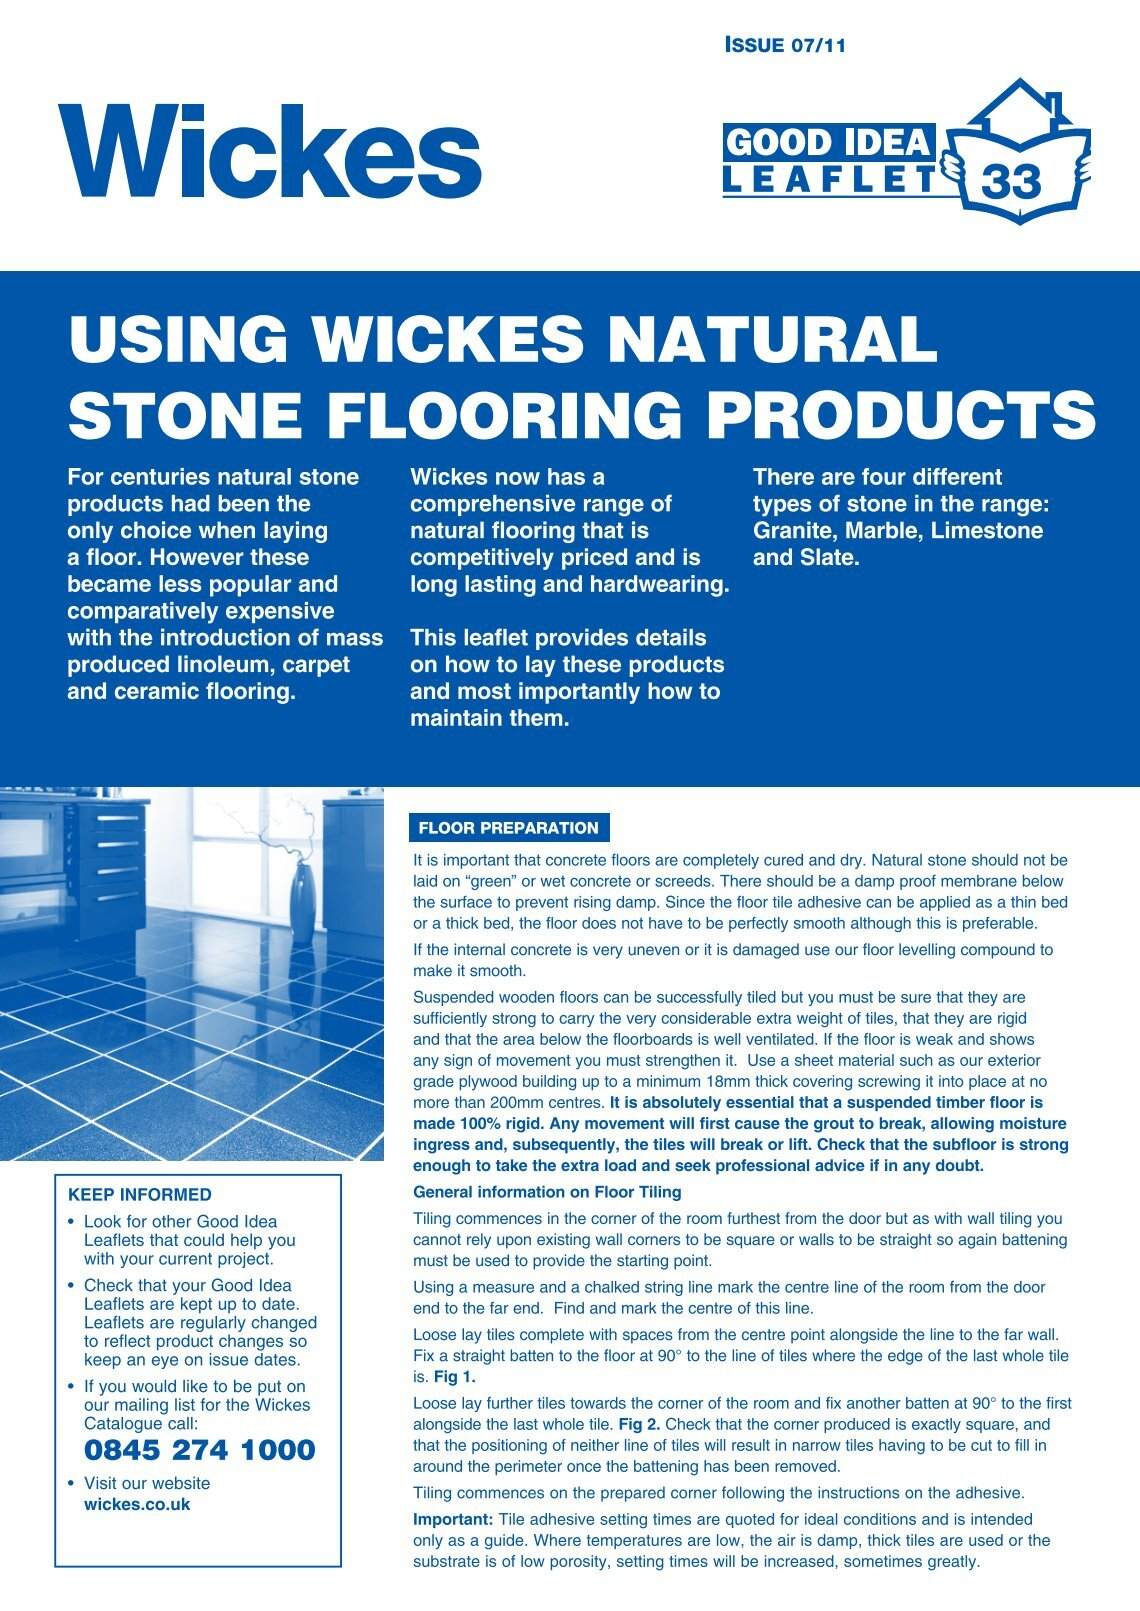 30 free Magazines from WICKES.CO.UK